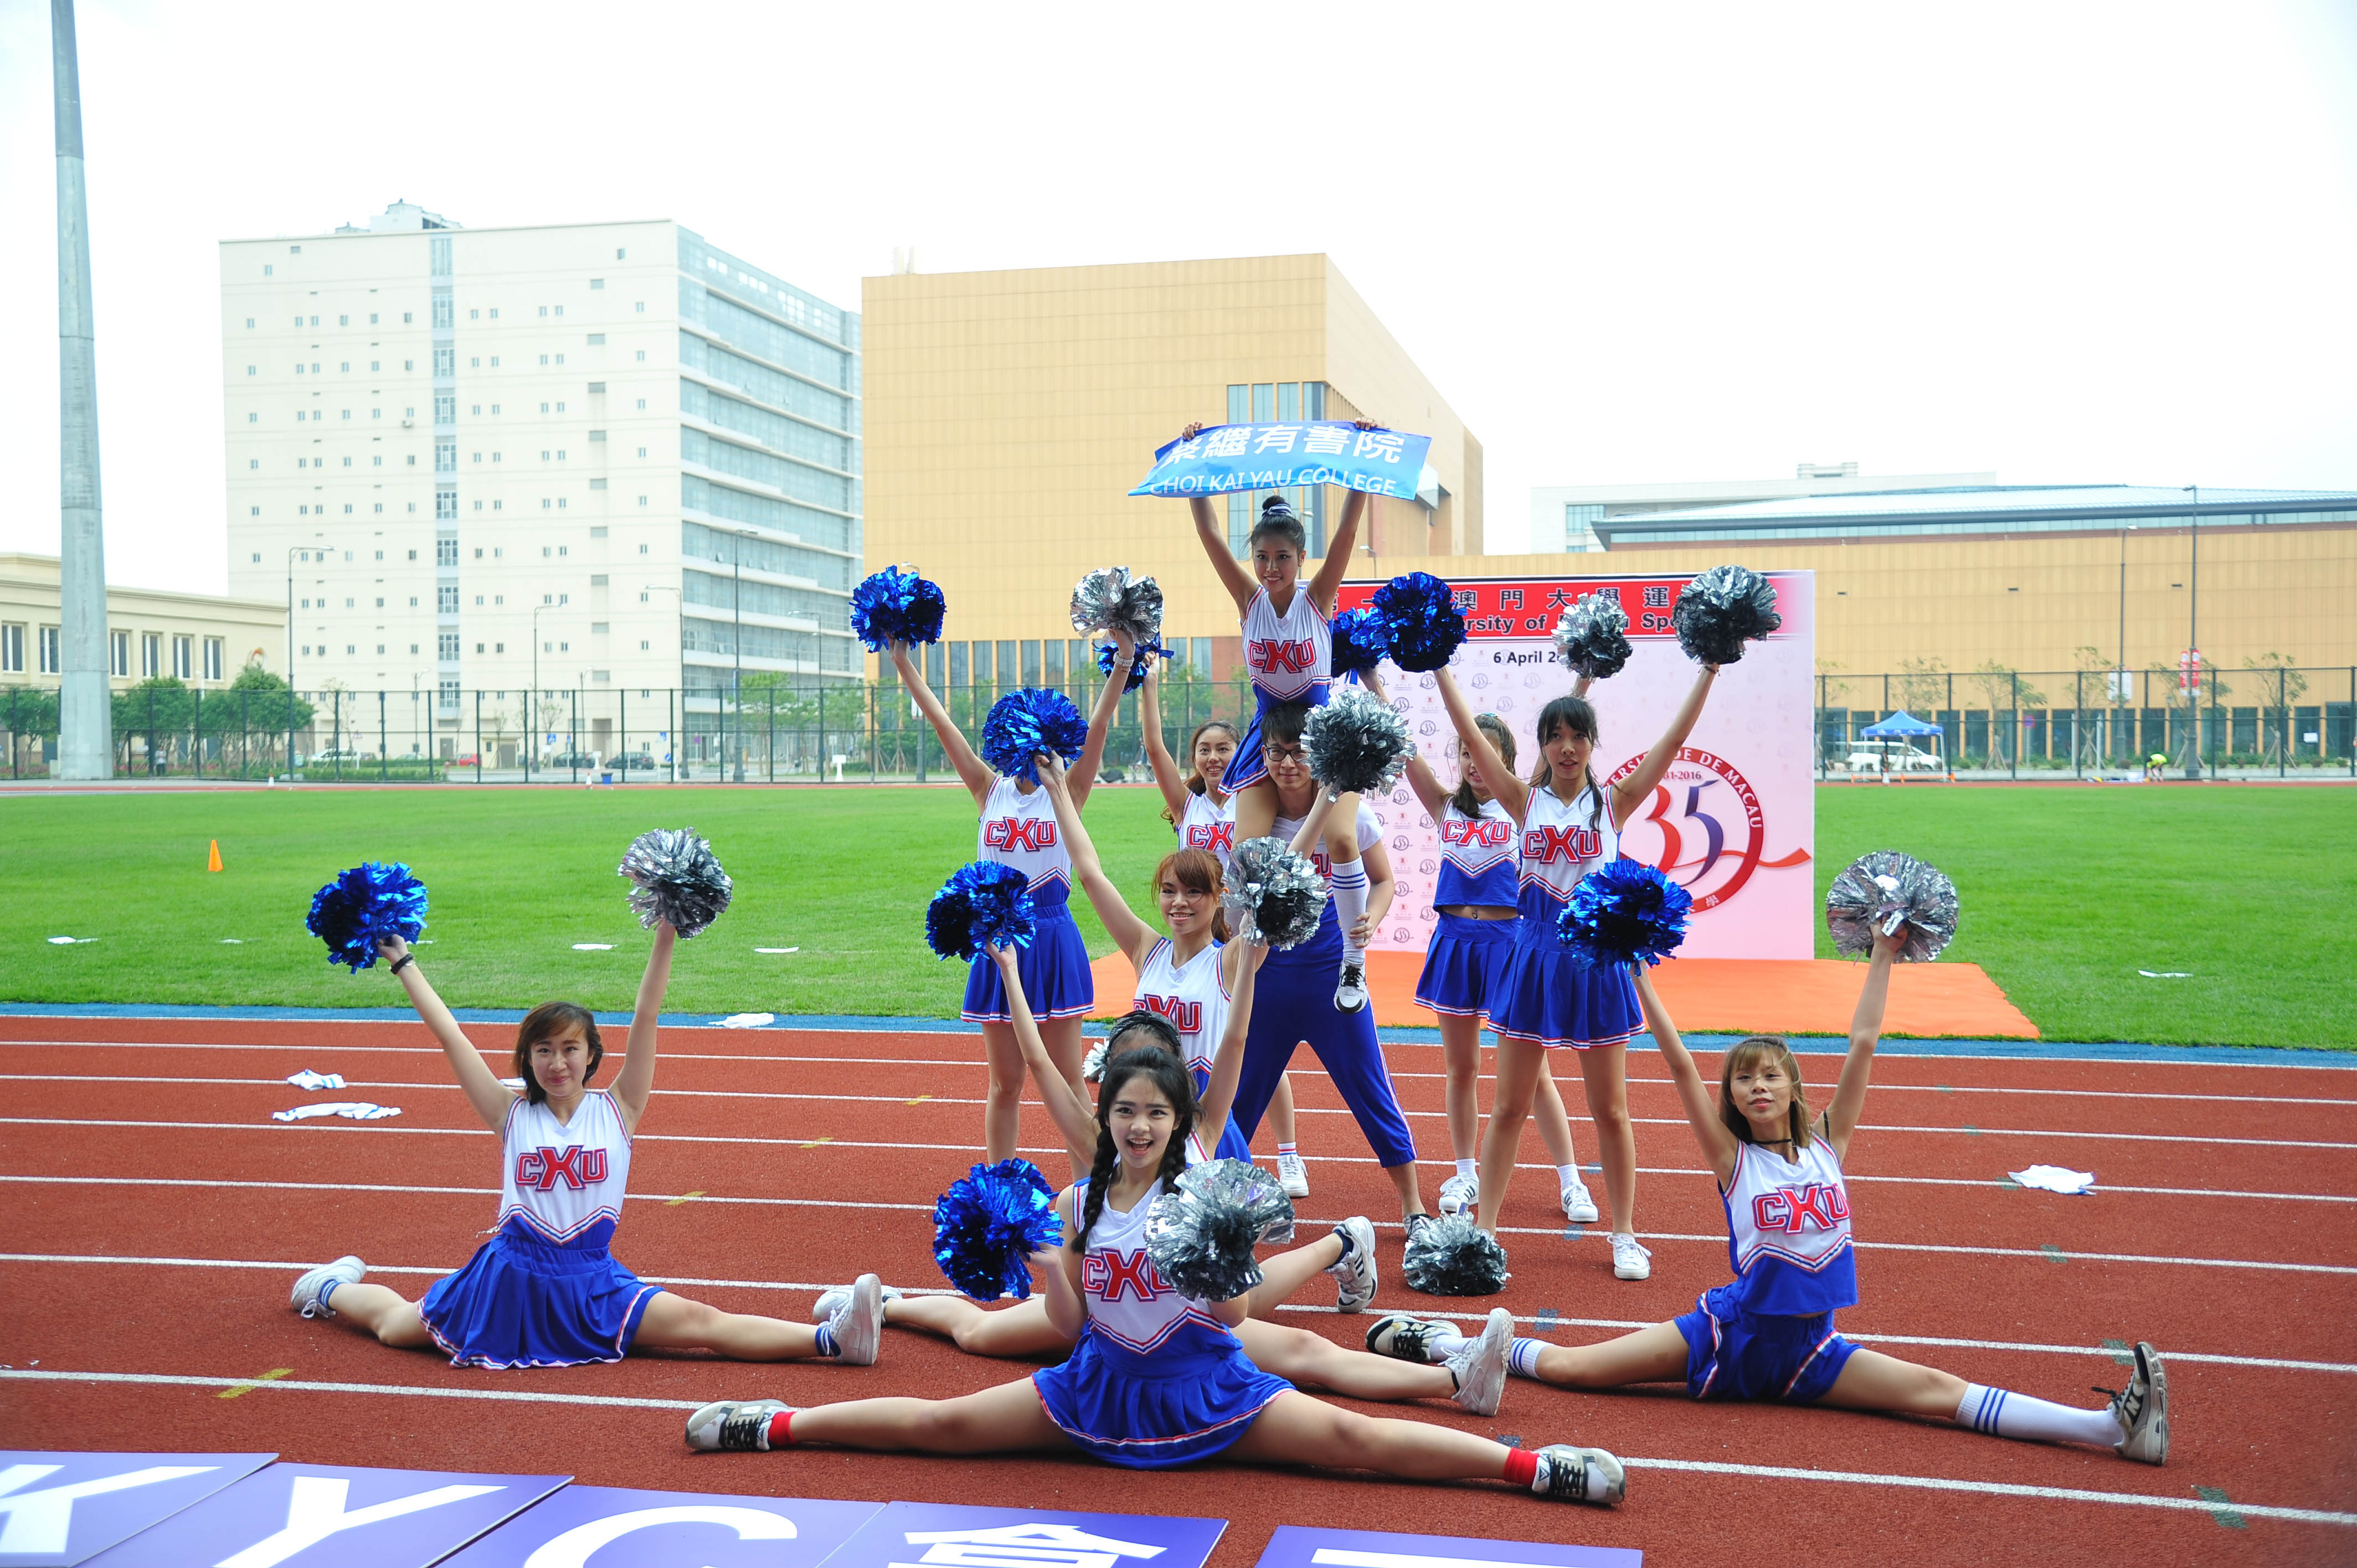 The cheerleading competition